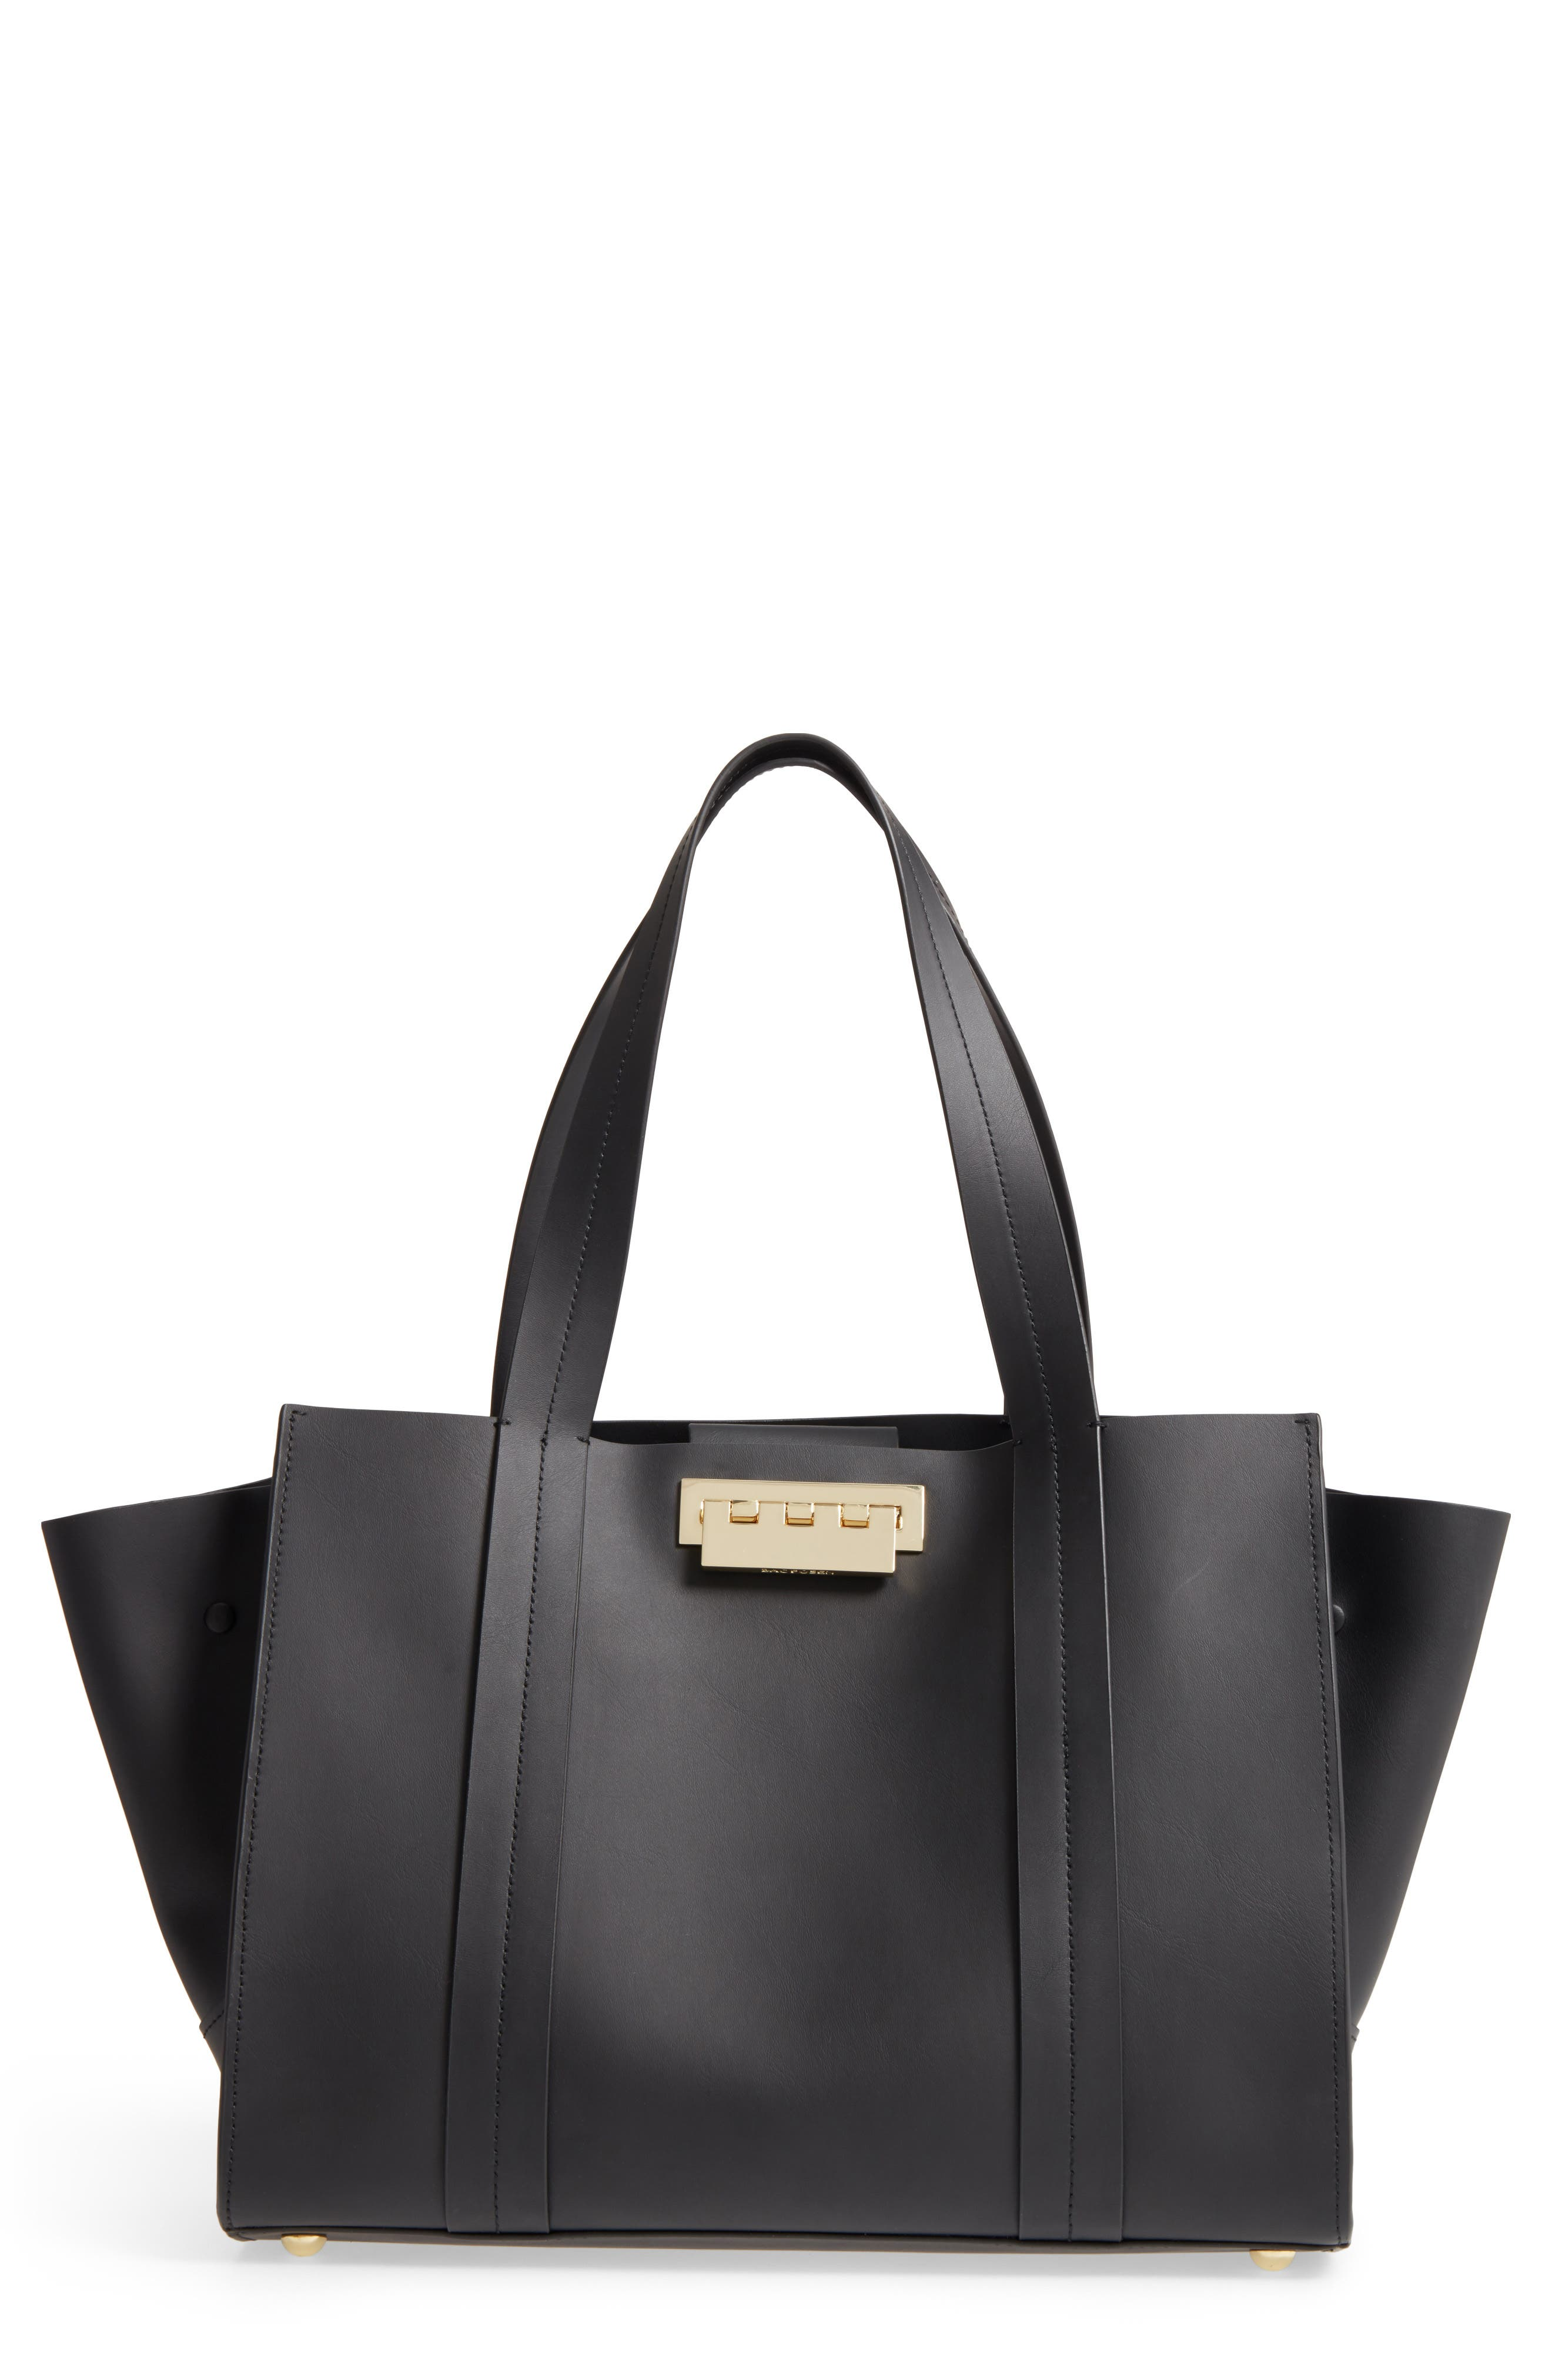 ZAC Zac Posen Large Eartha Iconic Calfskin Leather Satchel